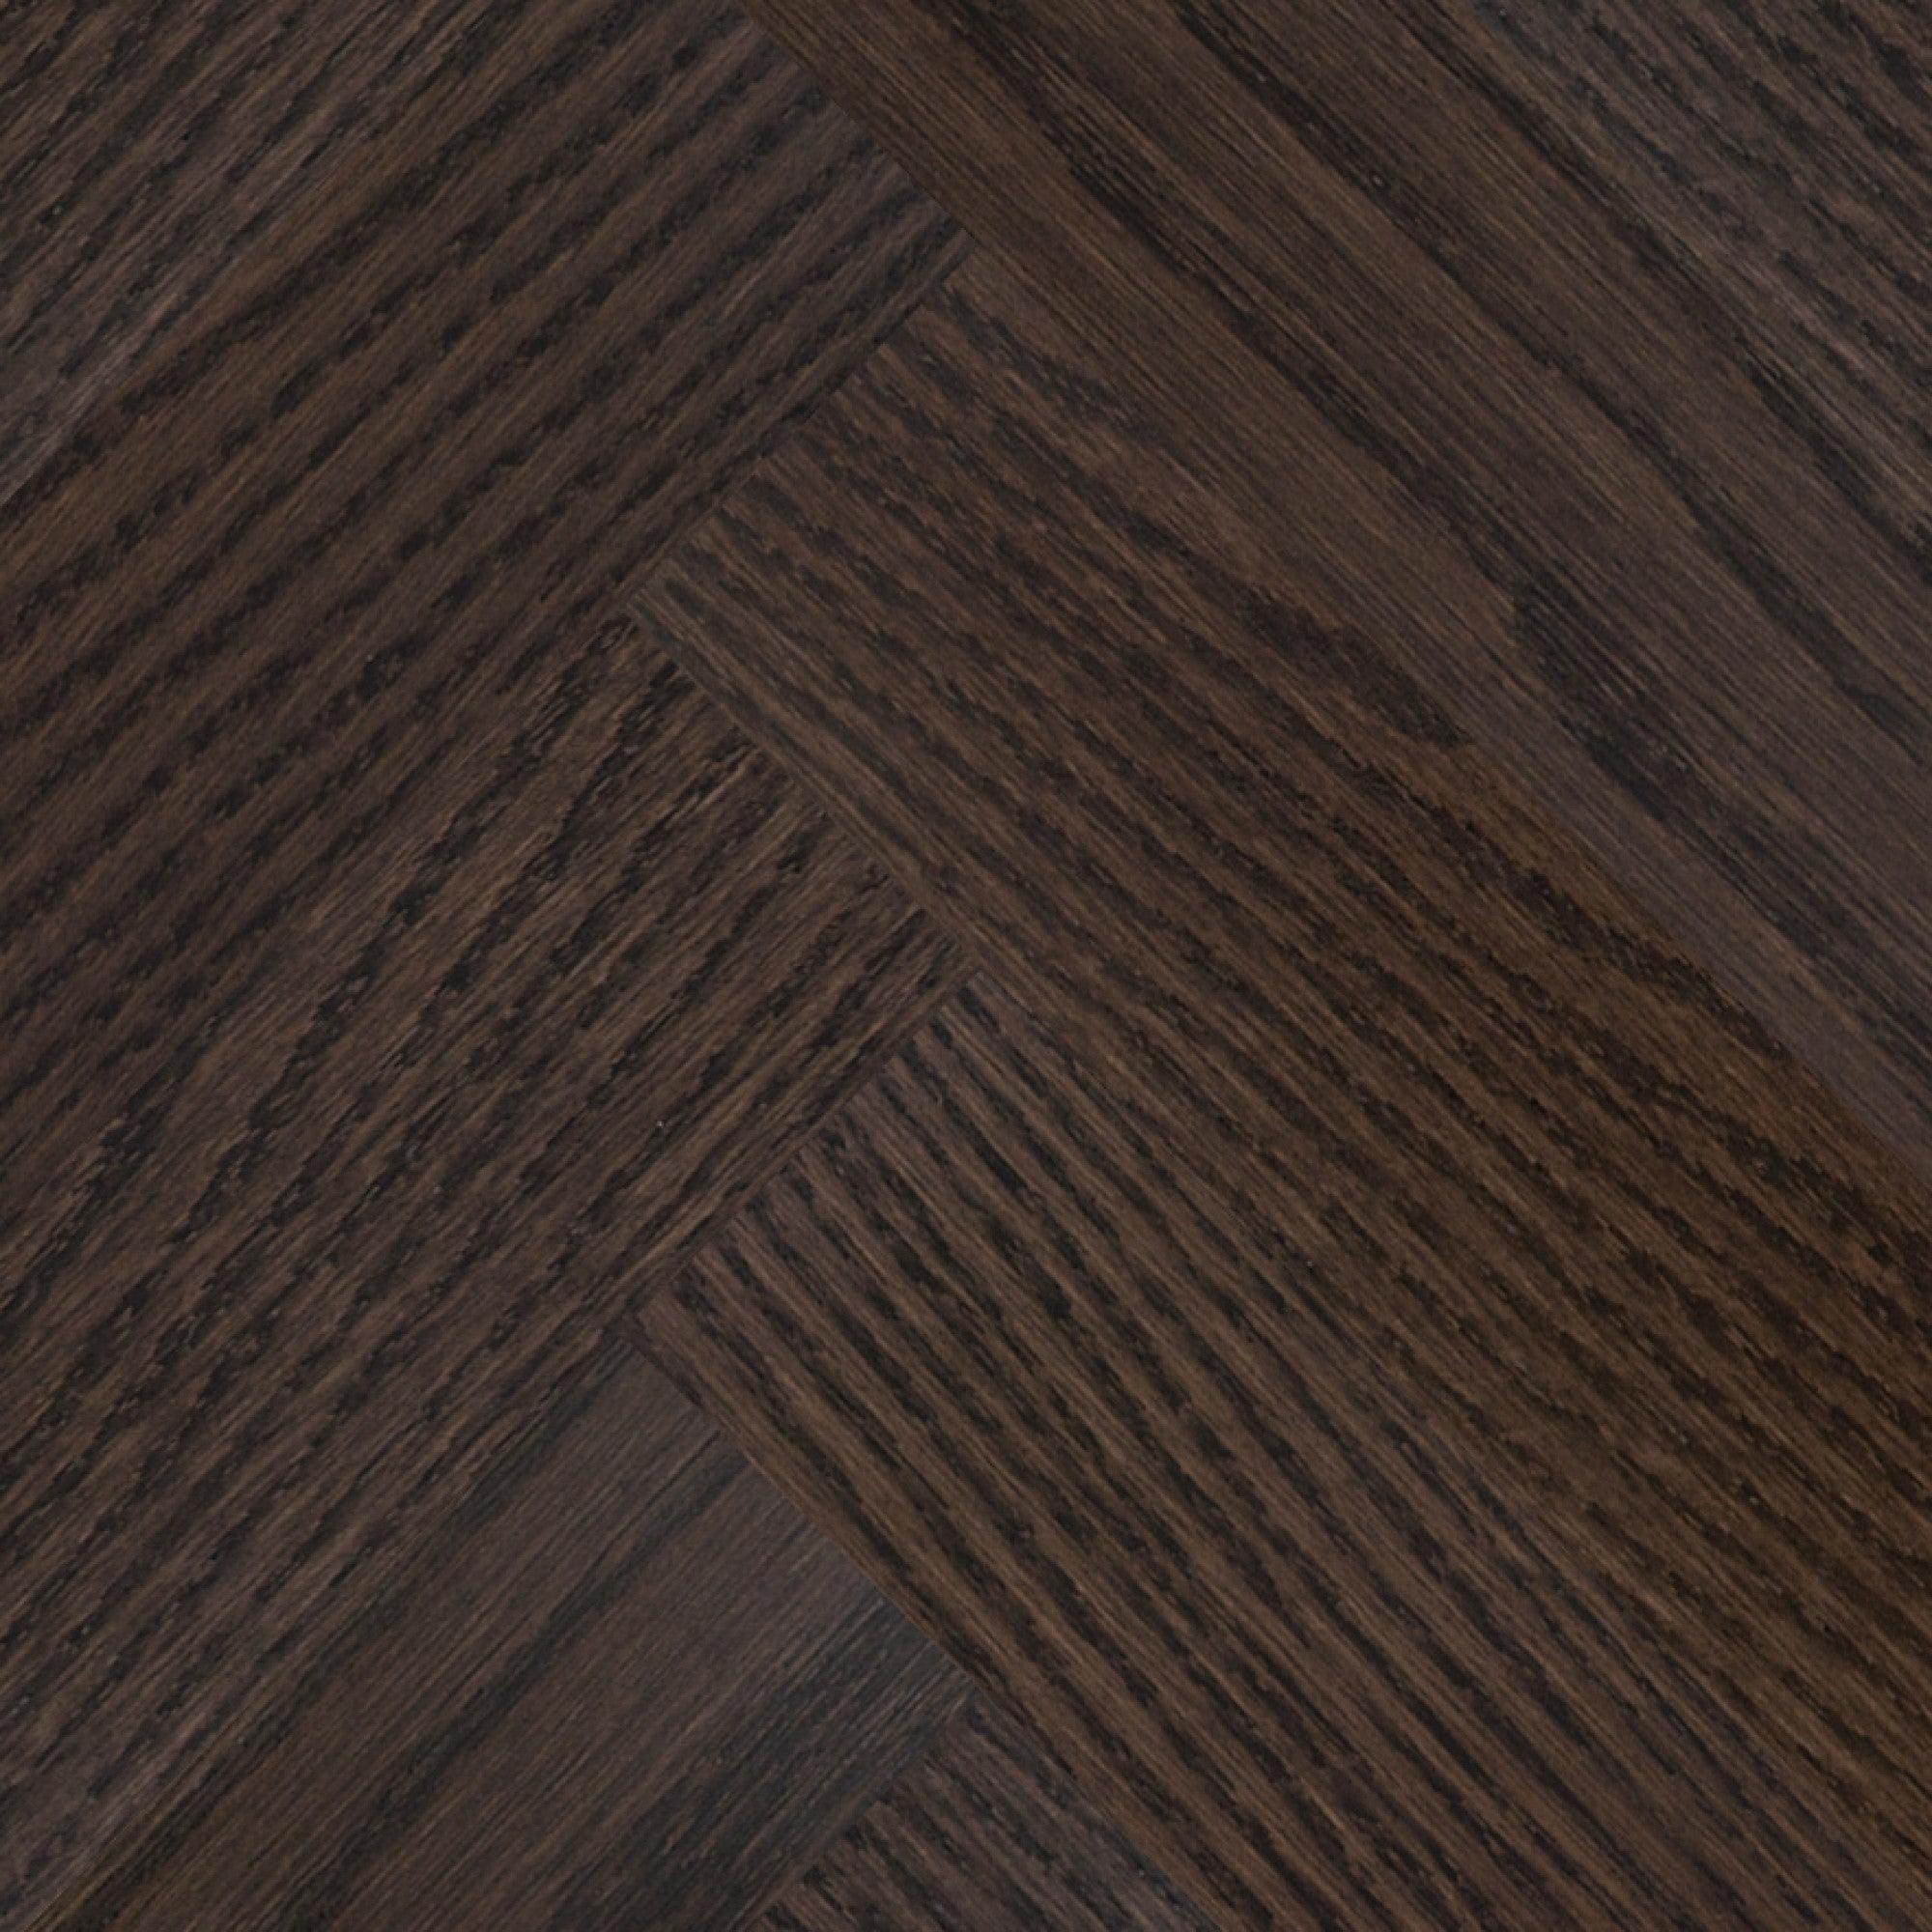 Herringbone - Red Oak Berkshire Smooth